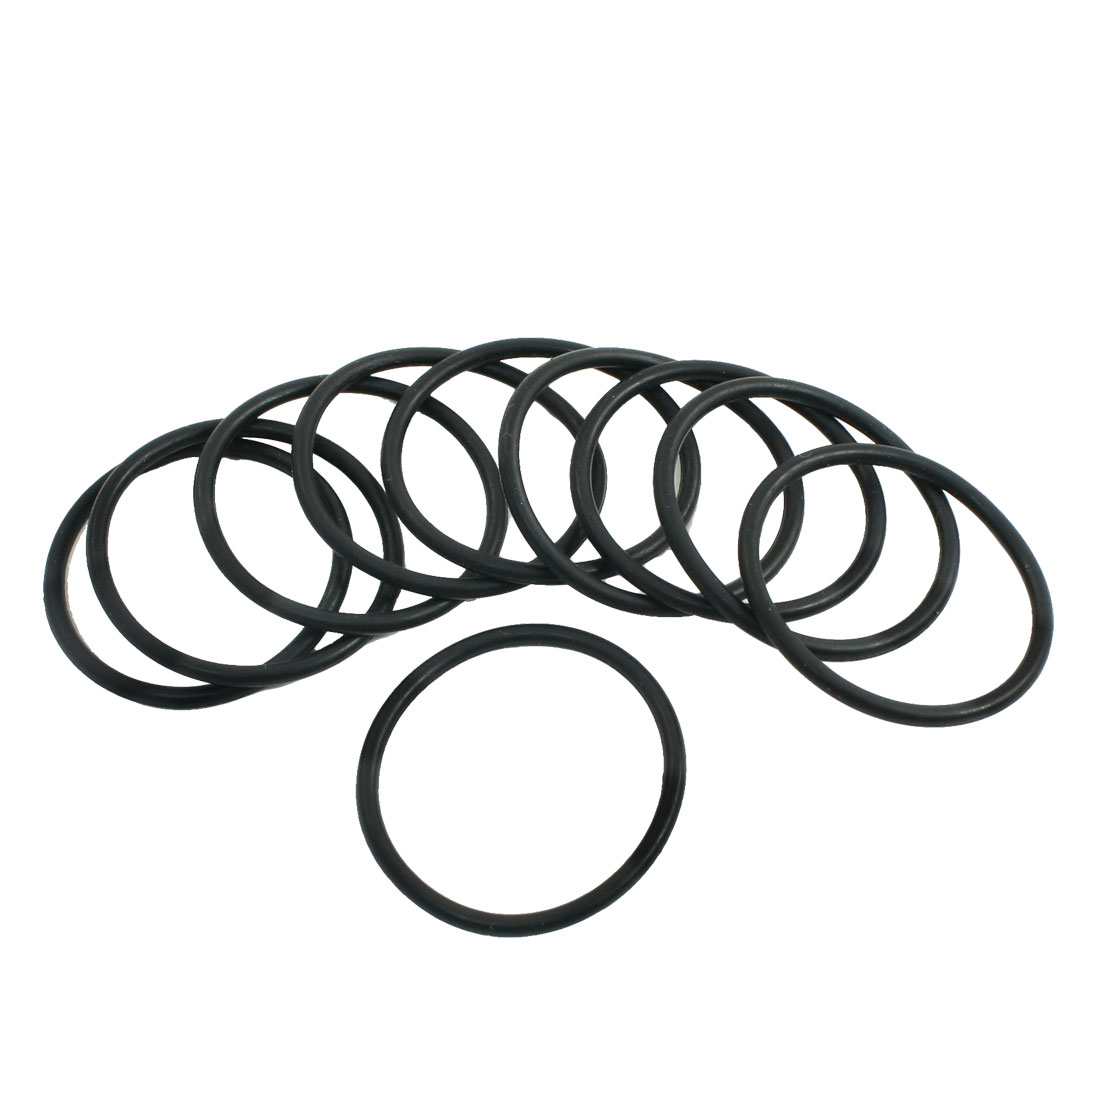 Unique Bargains 10pcs 36mm Outside Dia 2.4mm Thickness Rubber Oil Filter Seal Gaskets Black